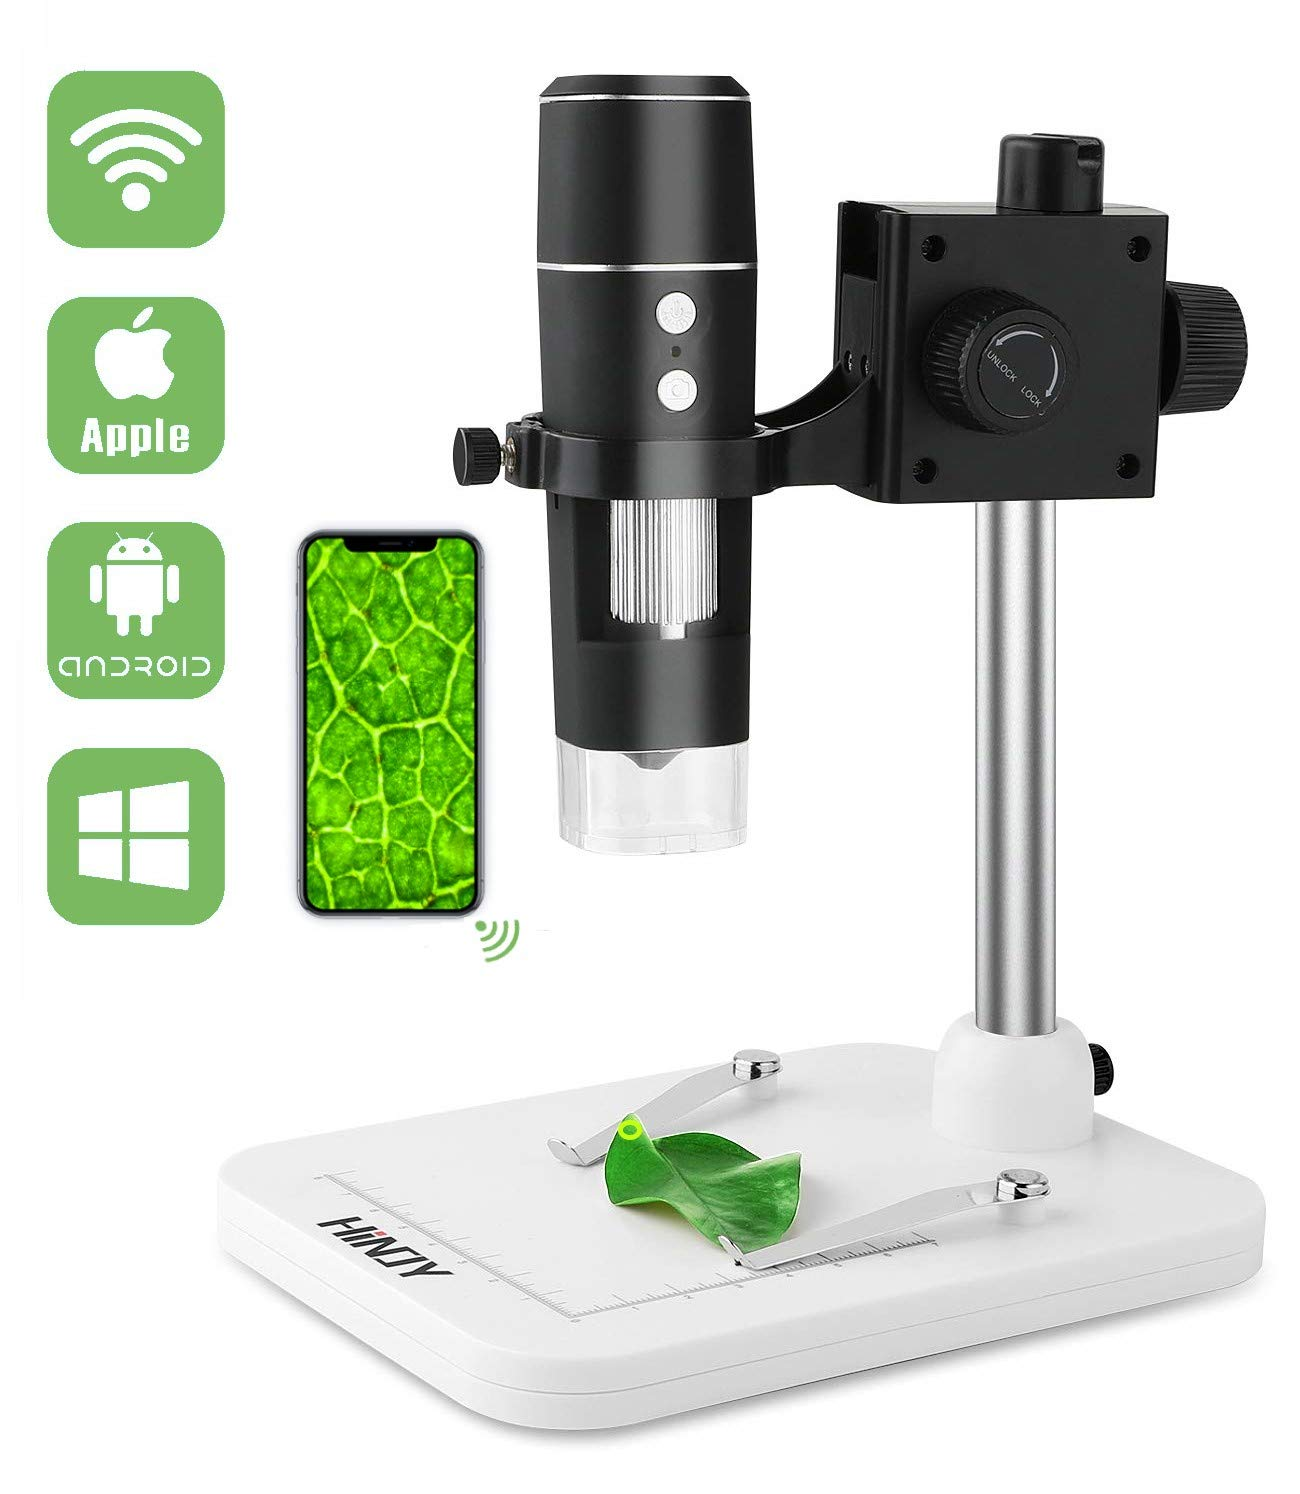 WiFi USB Microscope, HINOY Wireless Digital Mini Microscope Camera 2MP 1080p HD 50 to 1000x Magnification Students Endoscope for iPhone, Android, Windows & MAC Devices